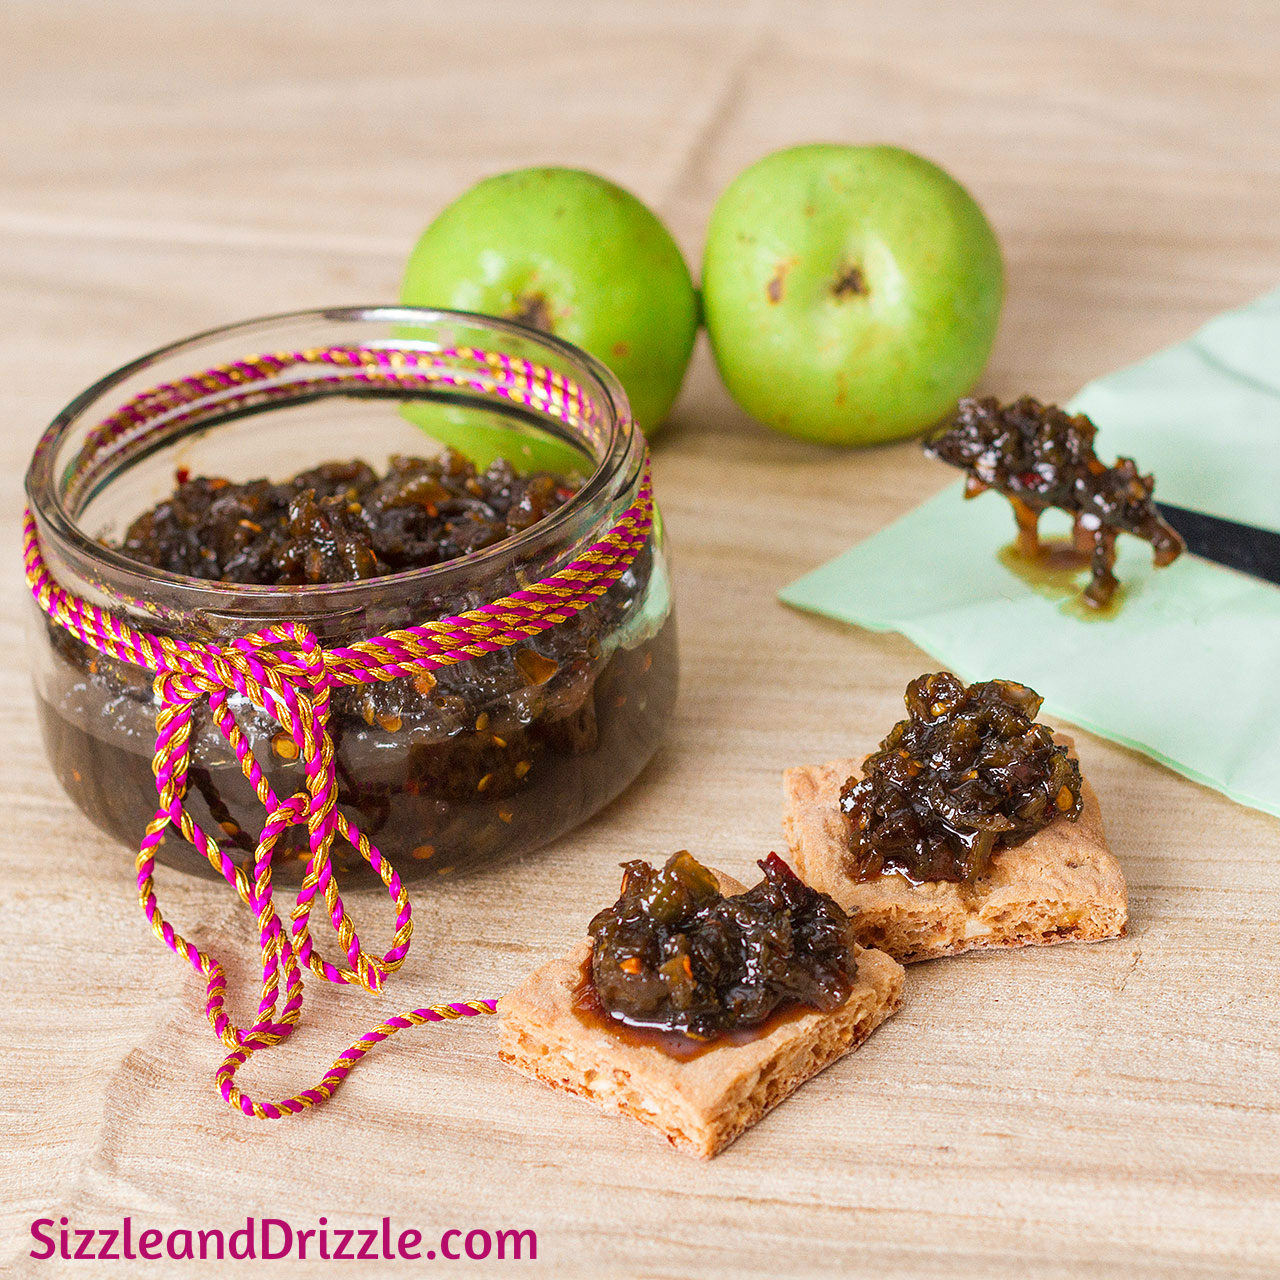 Green Tomato Jam | Sizzle and Drizzle